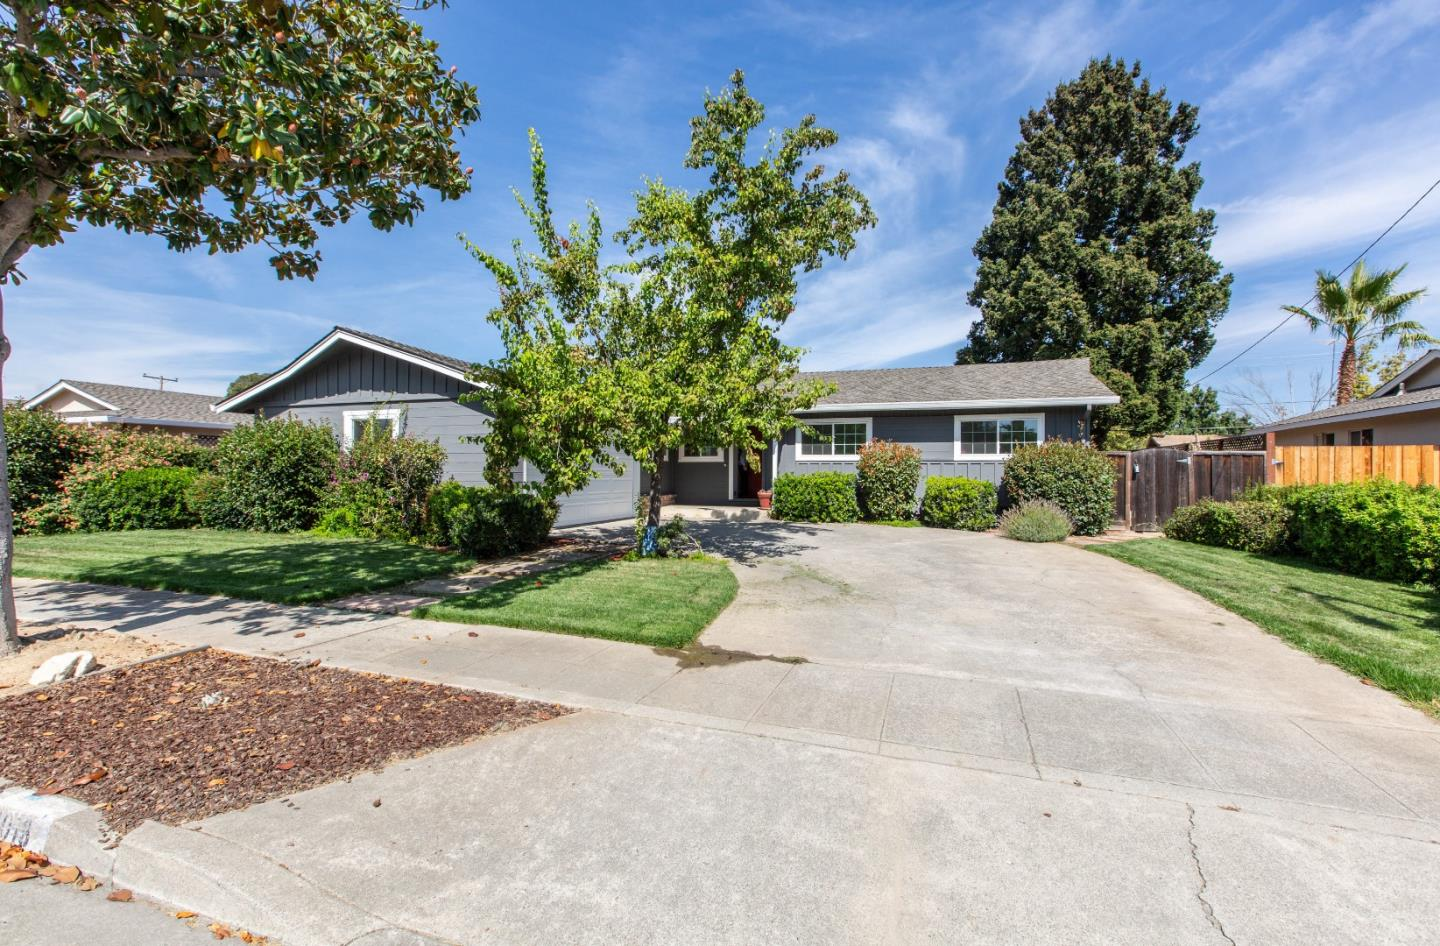 Detail Gallery Image 1 of 1 For 1013 Payette Ave, Sunnyvale, CA 94087 - 3 Beds | 2 Baths